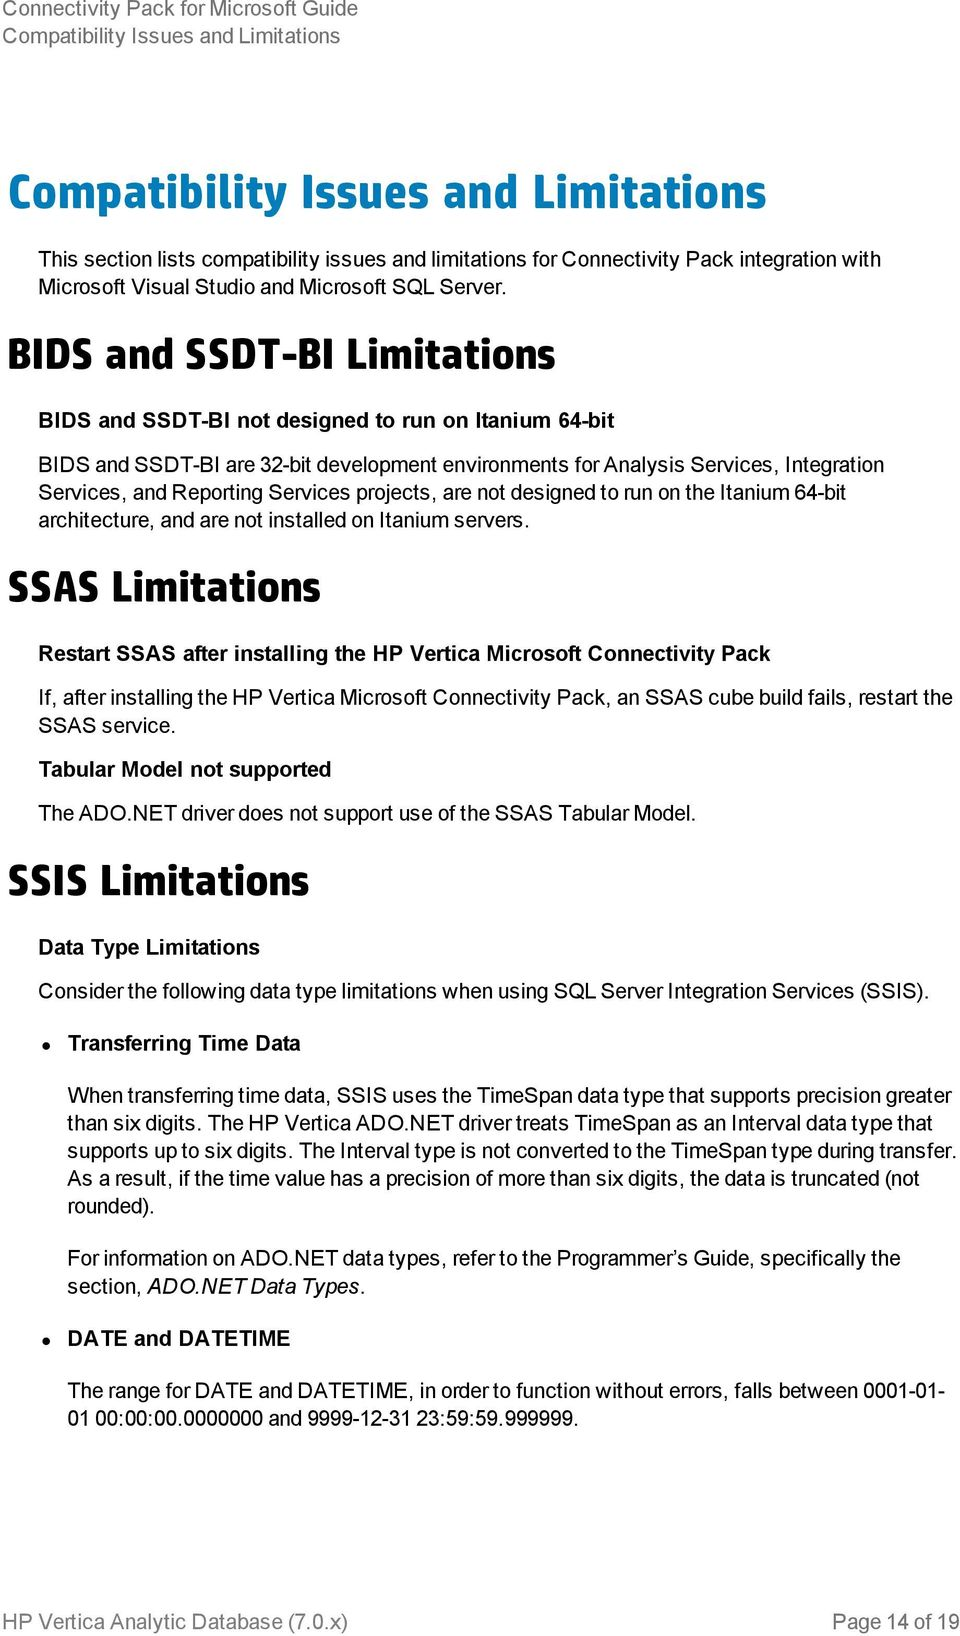 BIDS and SSDT-BI Limitations BIDS and SSDT-BI not designed to run on Itanium 64-bit BIDS and SSDT-BI are 32-bit development environments for Analysis Services, Integration Services, and Reporting